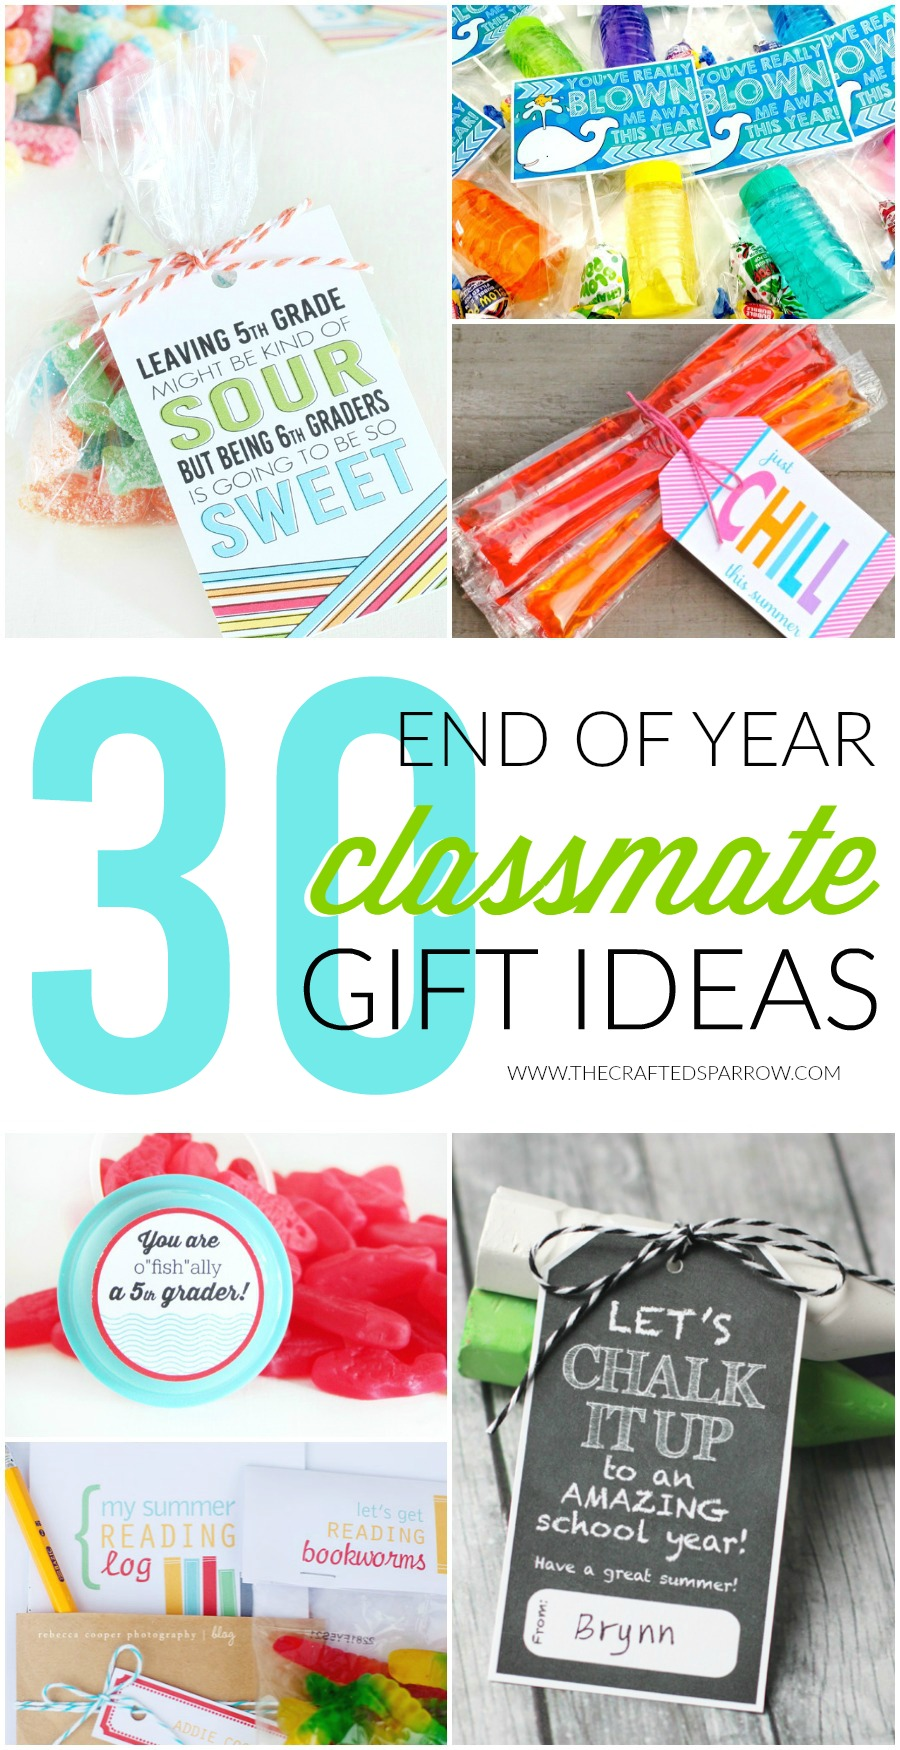 30 End of Year Class Gift Ideas